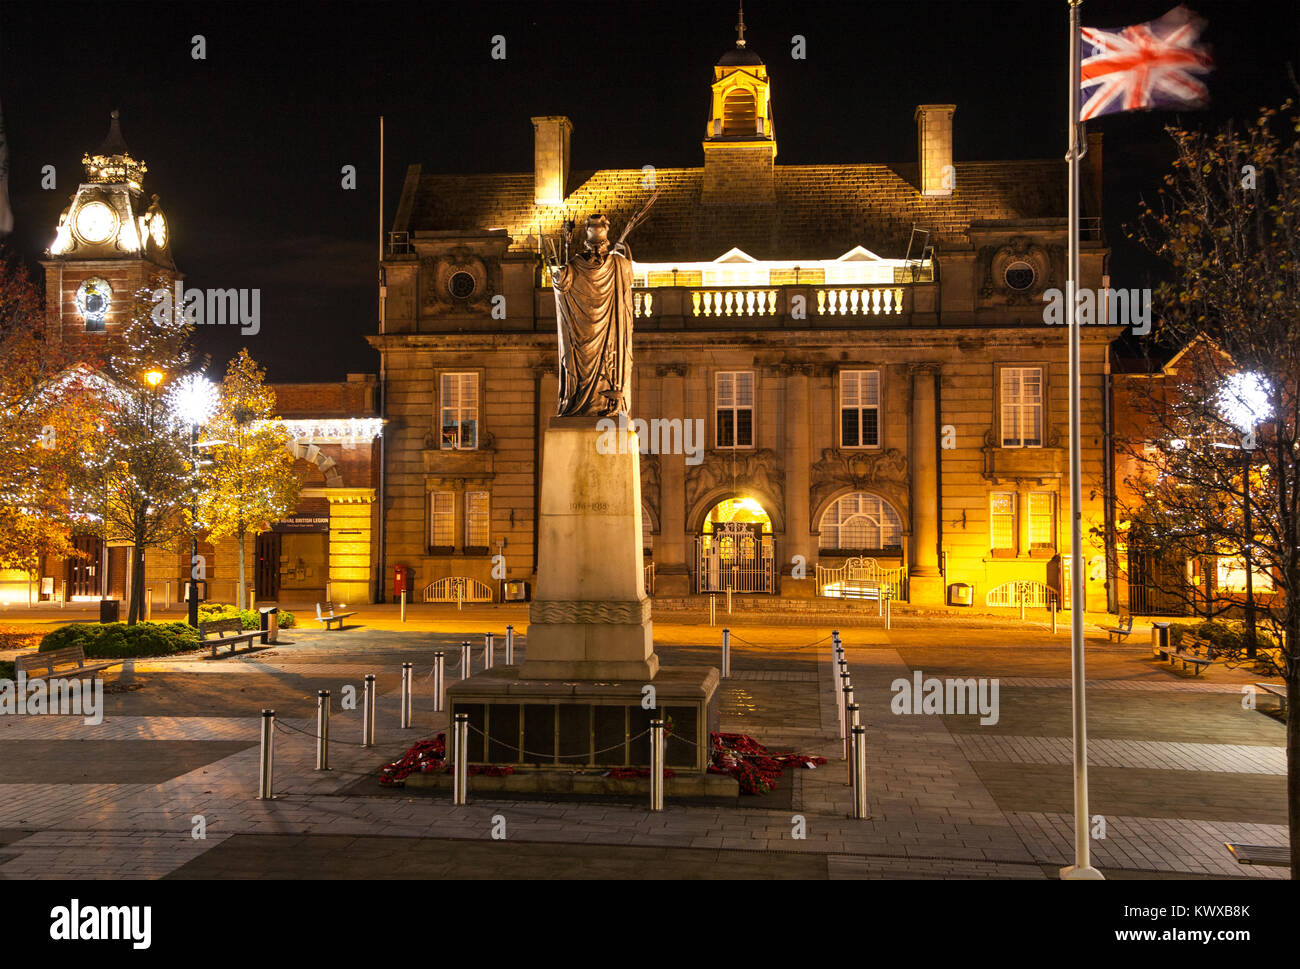 Crewe town center Cheshire floodlit at Christmas time with Christmas tree and lights showing the war memorial municipal - Stock Image